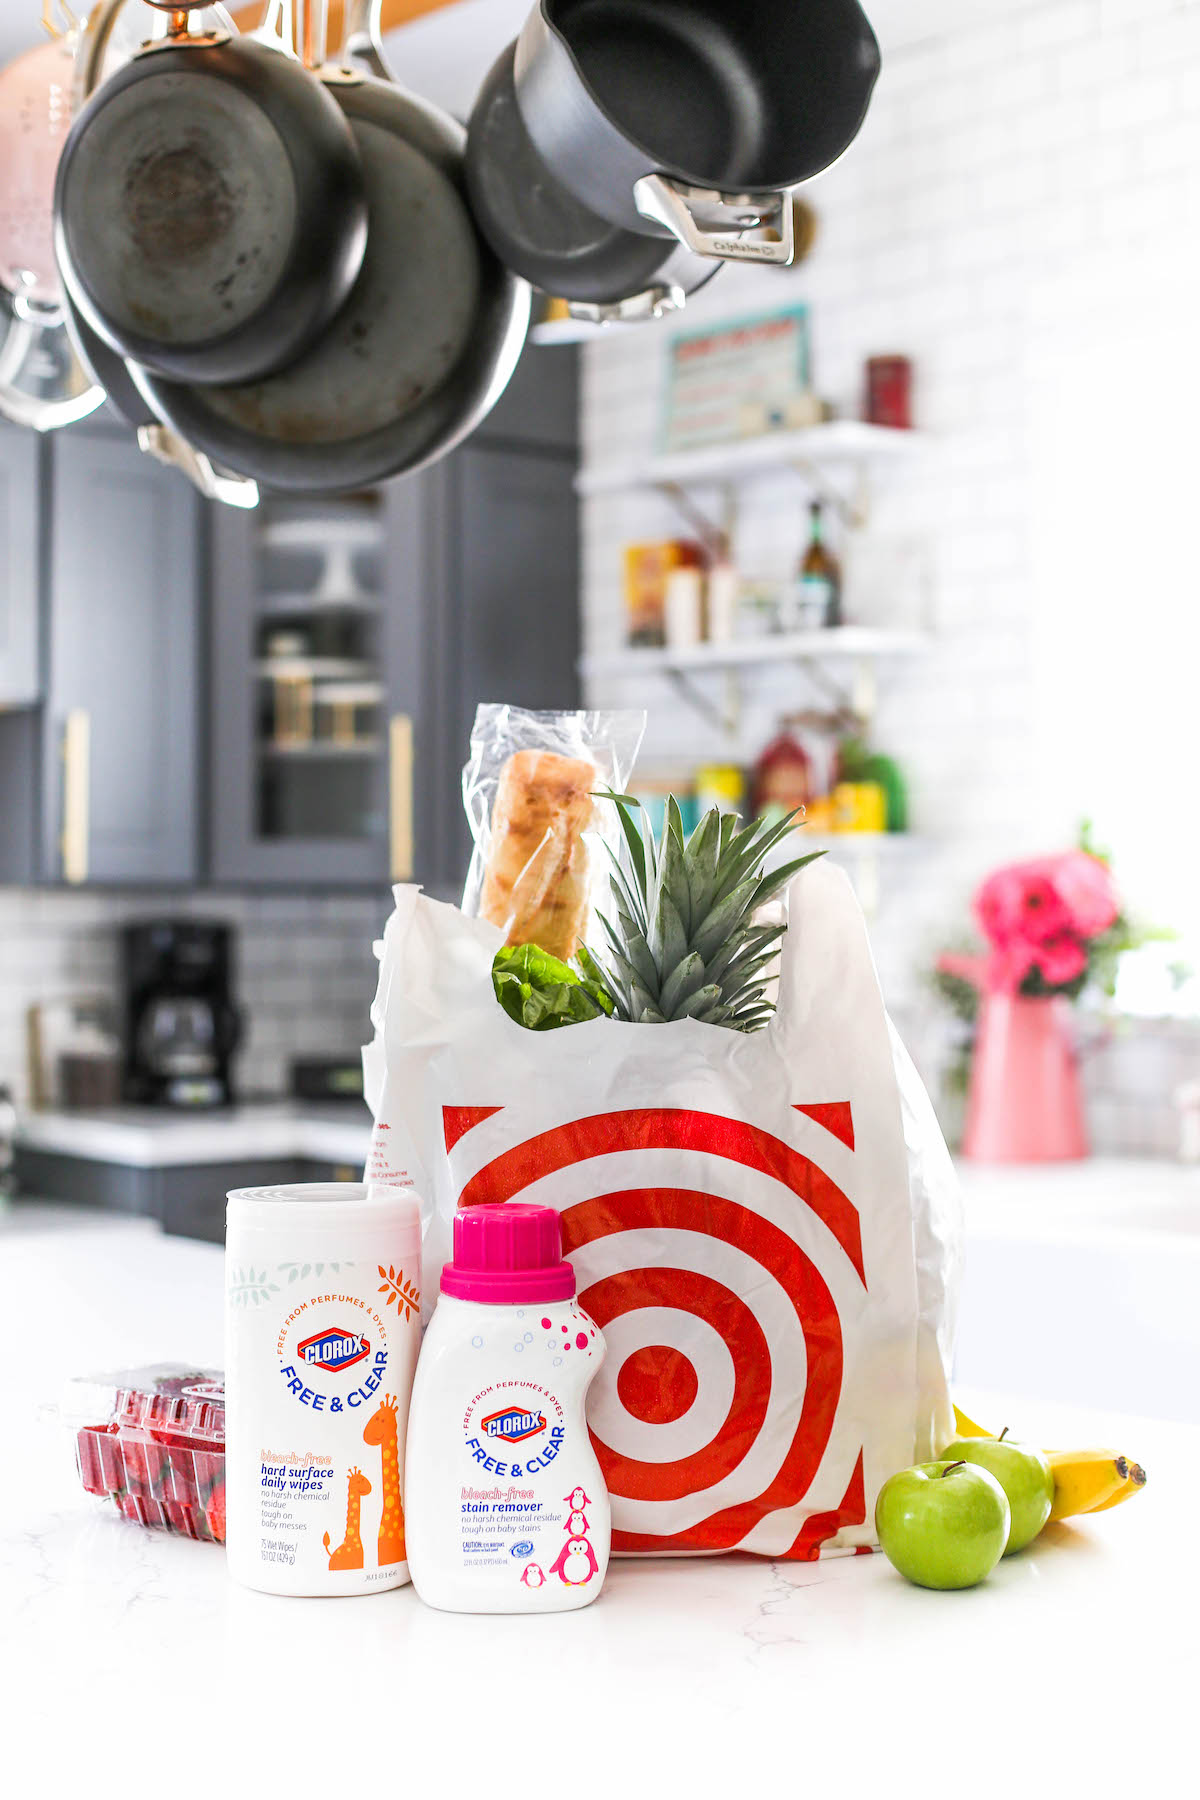 Bag of groceries on kitchen counter